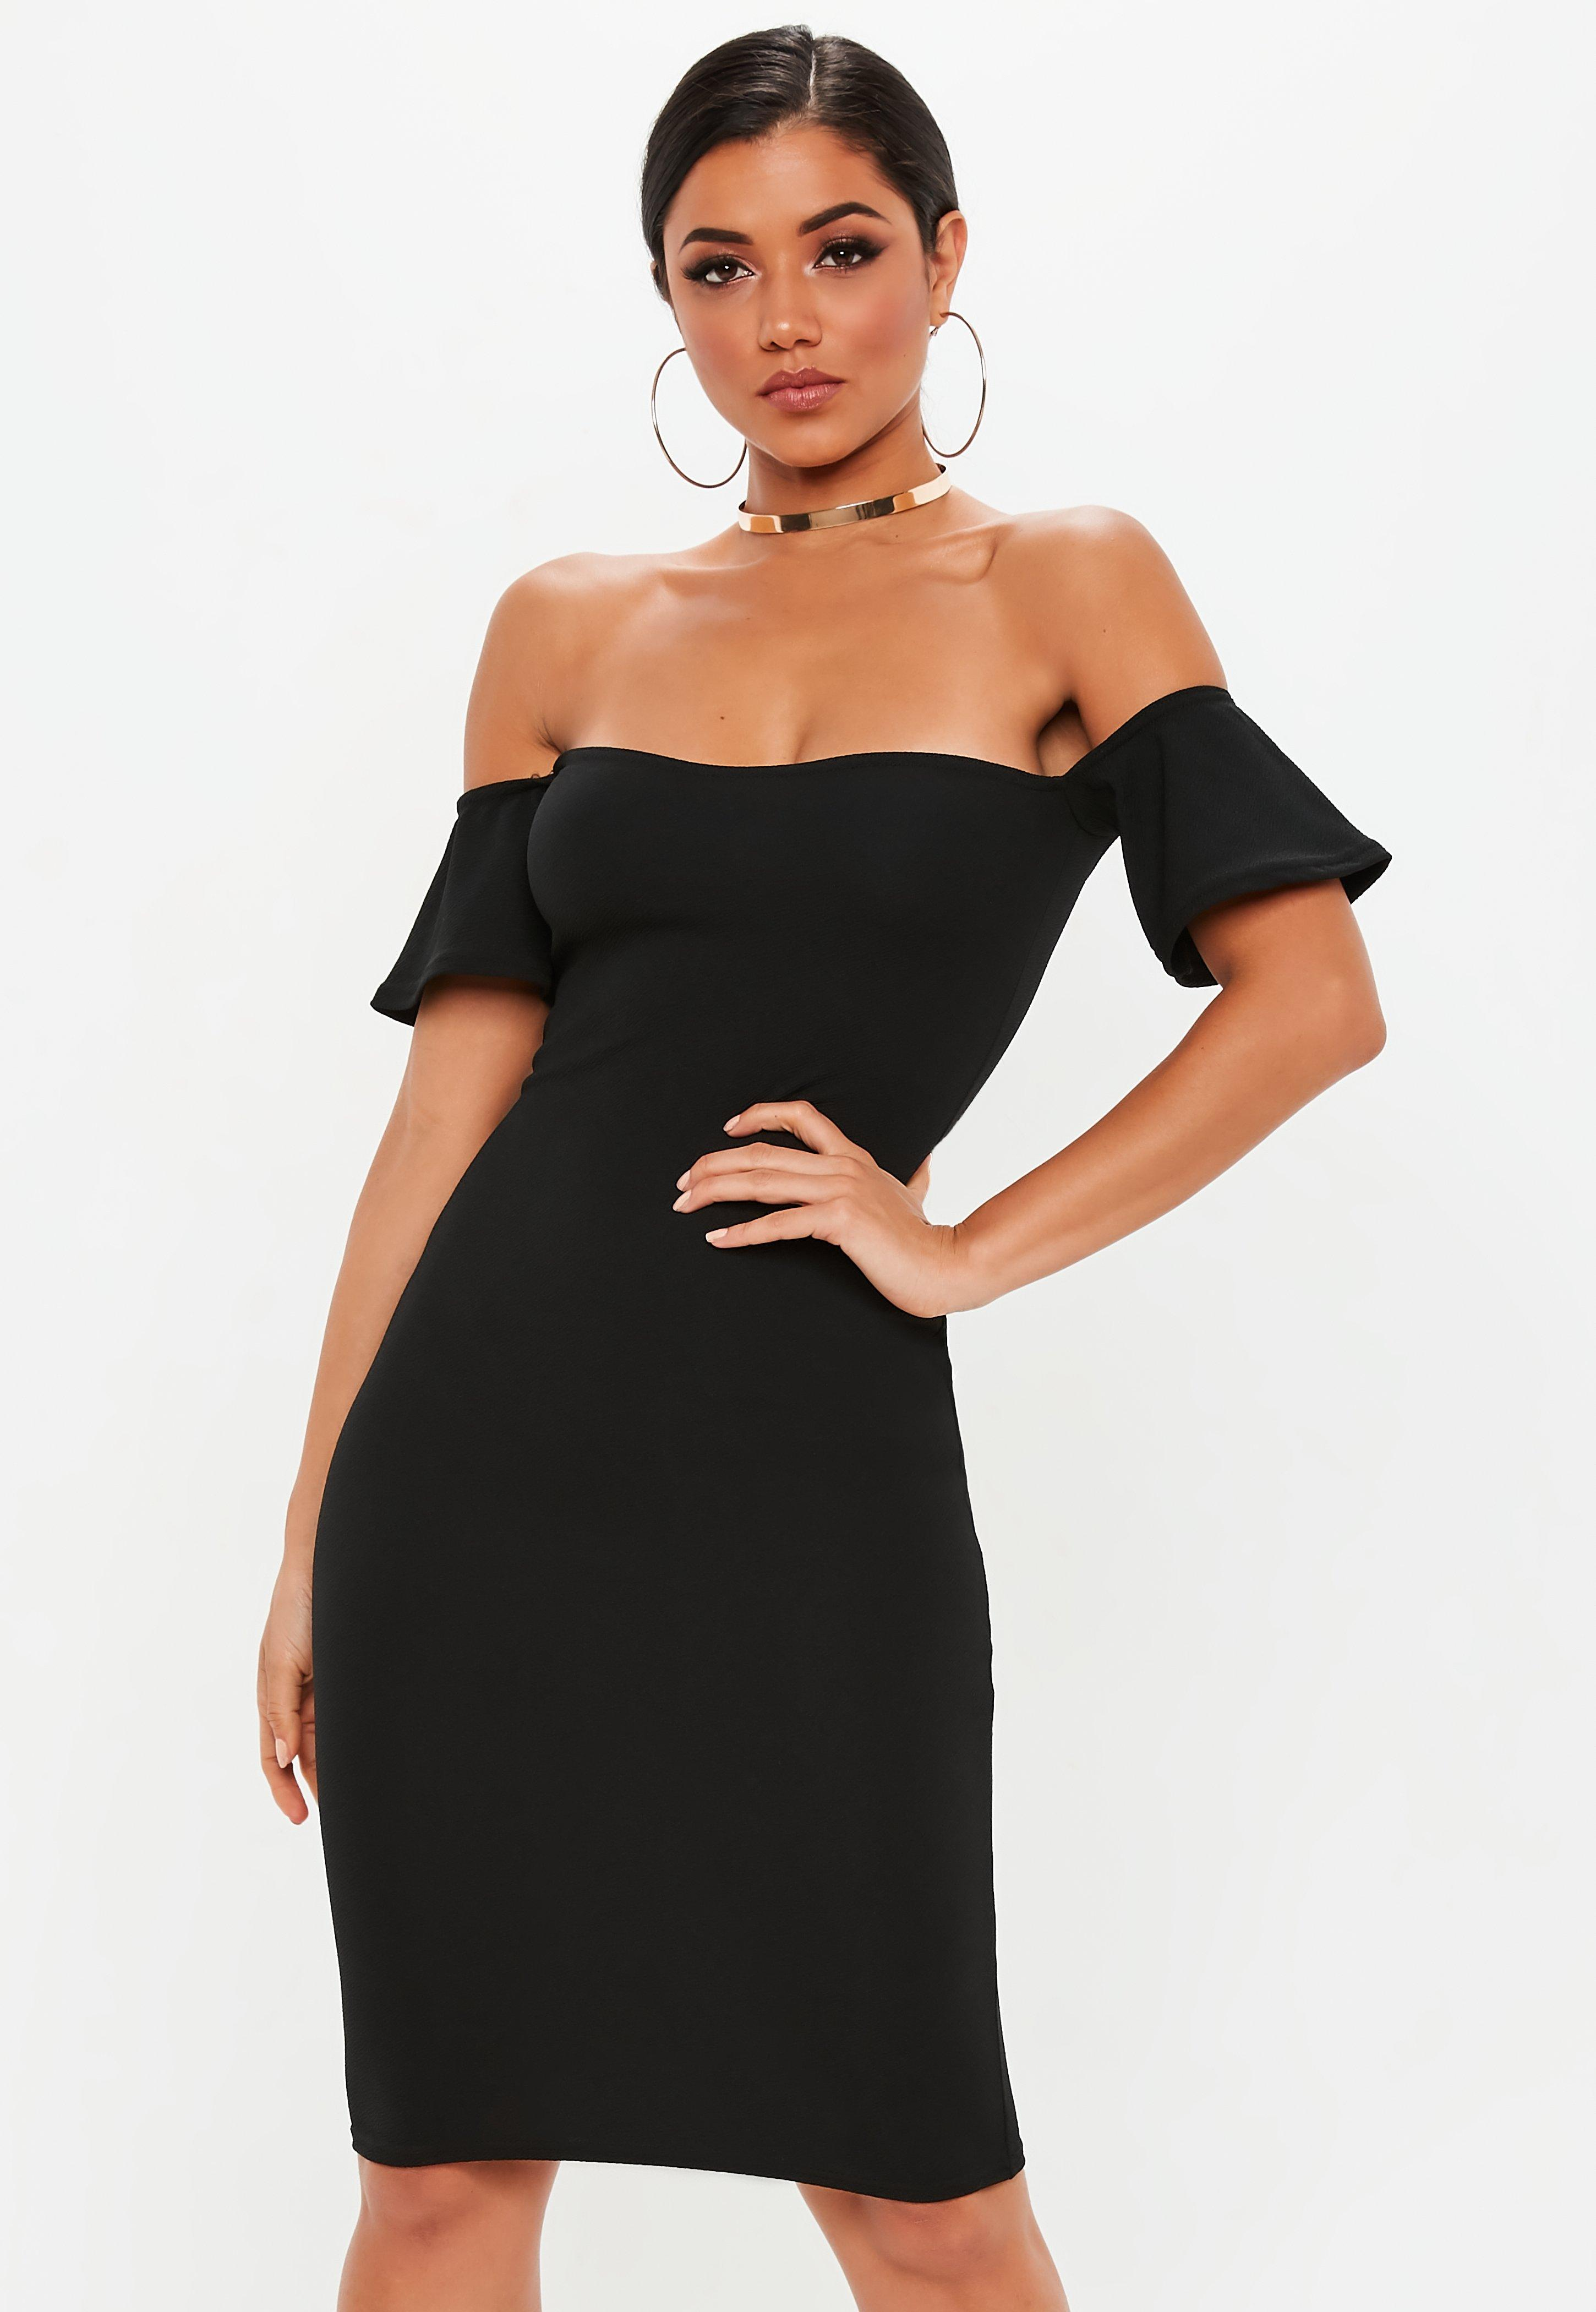 Witching Size College Graduation Dresses Bardot Bodycon Midi Dress Black Bardot Bodycon Midi Dress Black Graduation Dresses Uni Grad Dresses Missguided Ireland Graduation Dresses Mom College wedding dress Graduation Dresses For College